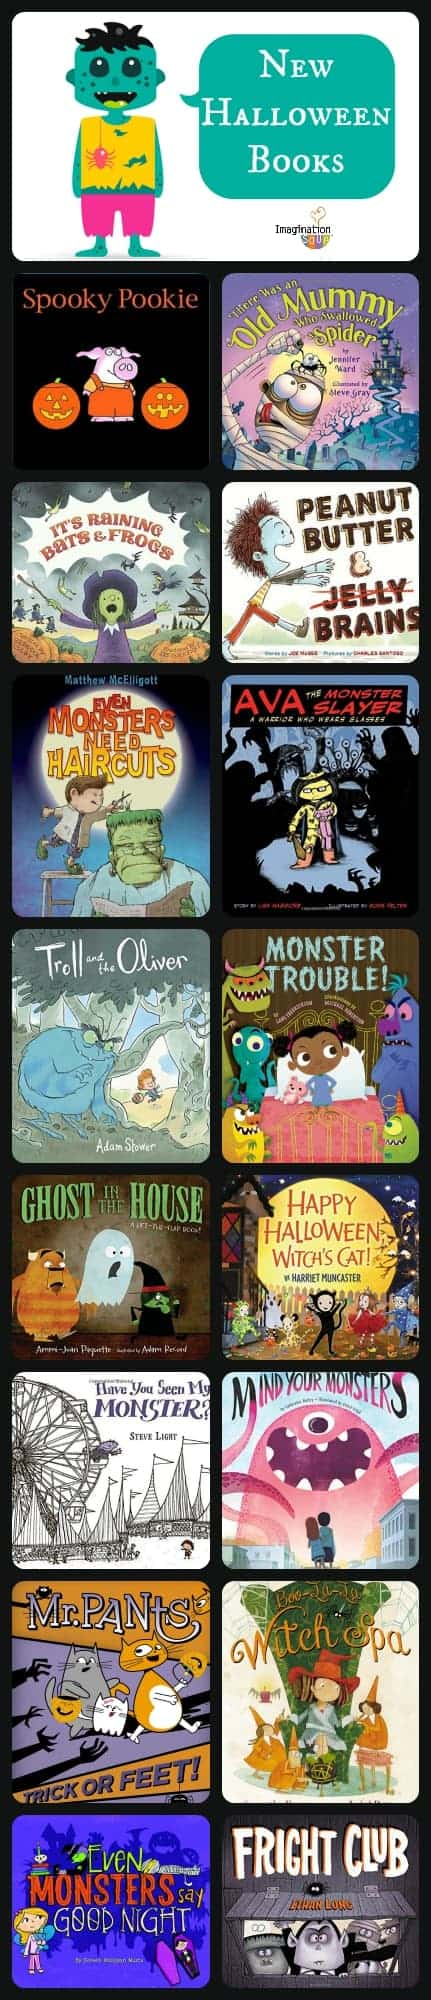 New Halloween and Monster Books